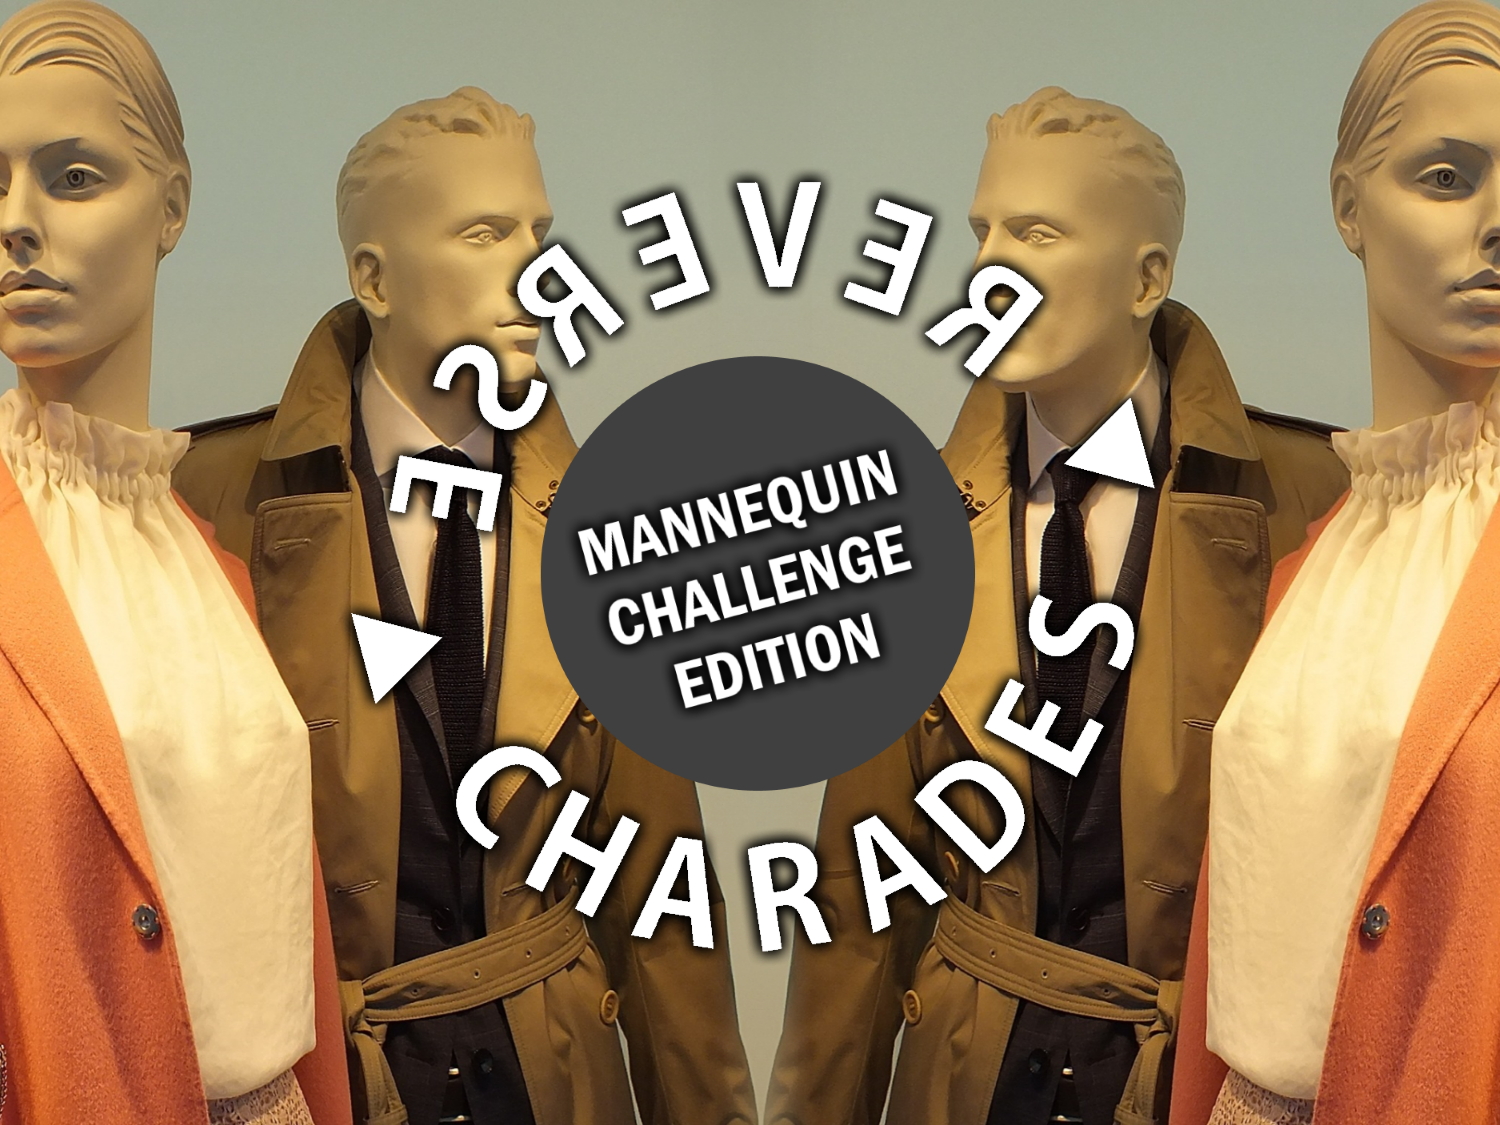 Reverse Charades Mannequin Challenge SD.png